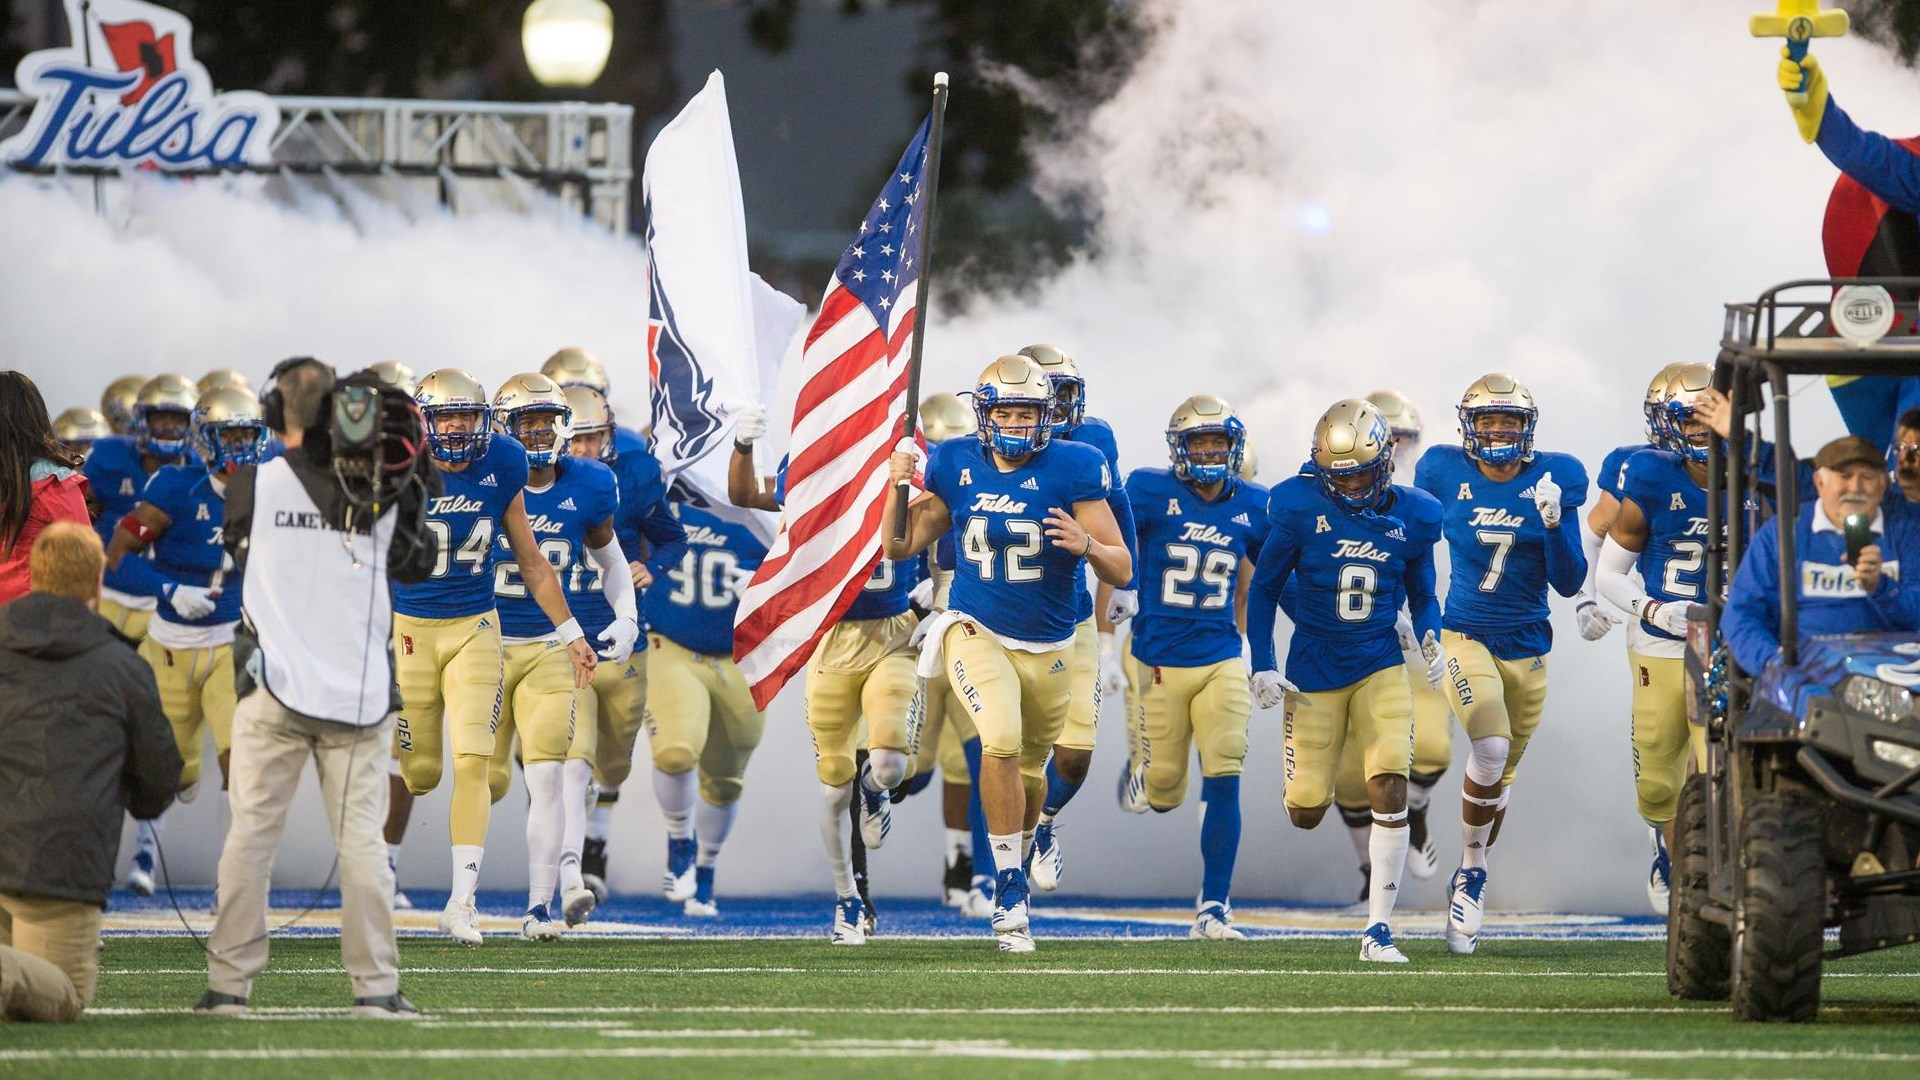 Tulsa S 2019 Season Opener At Michigan State To Be Played On Friday